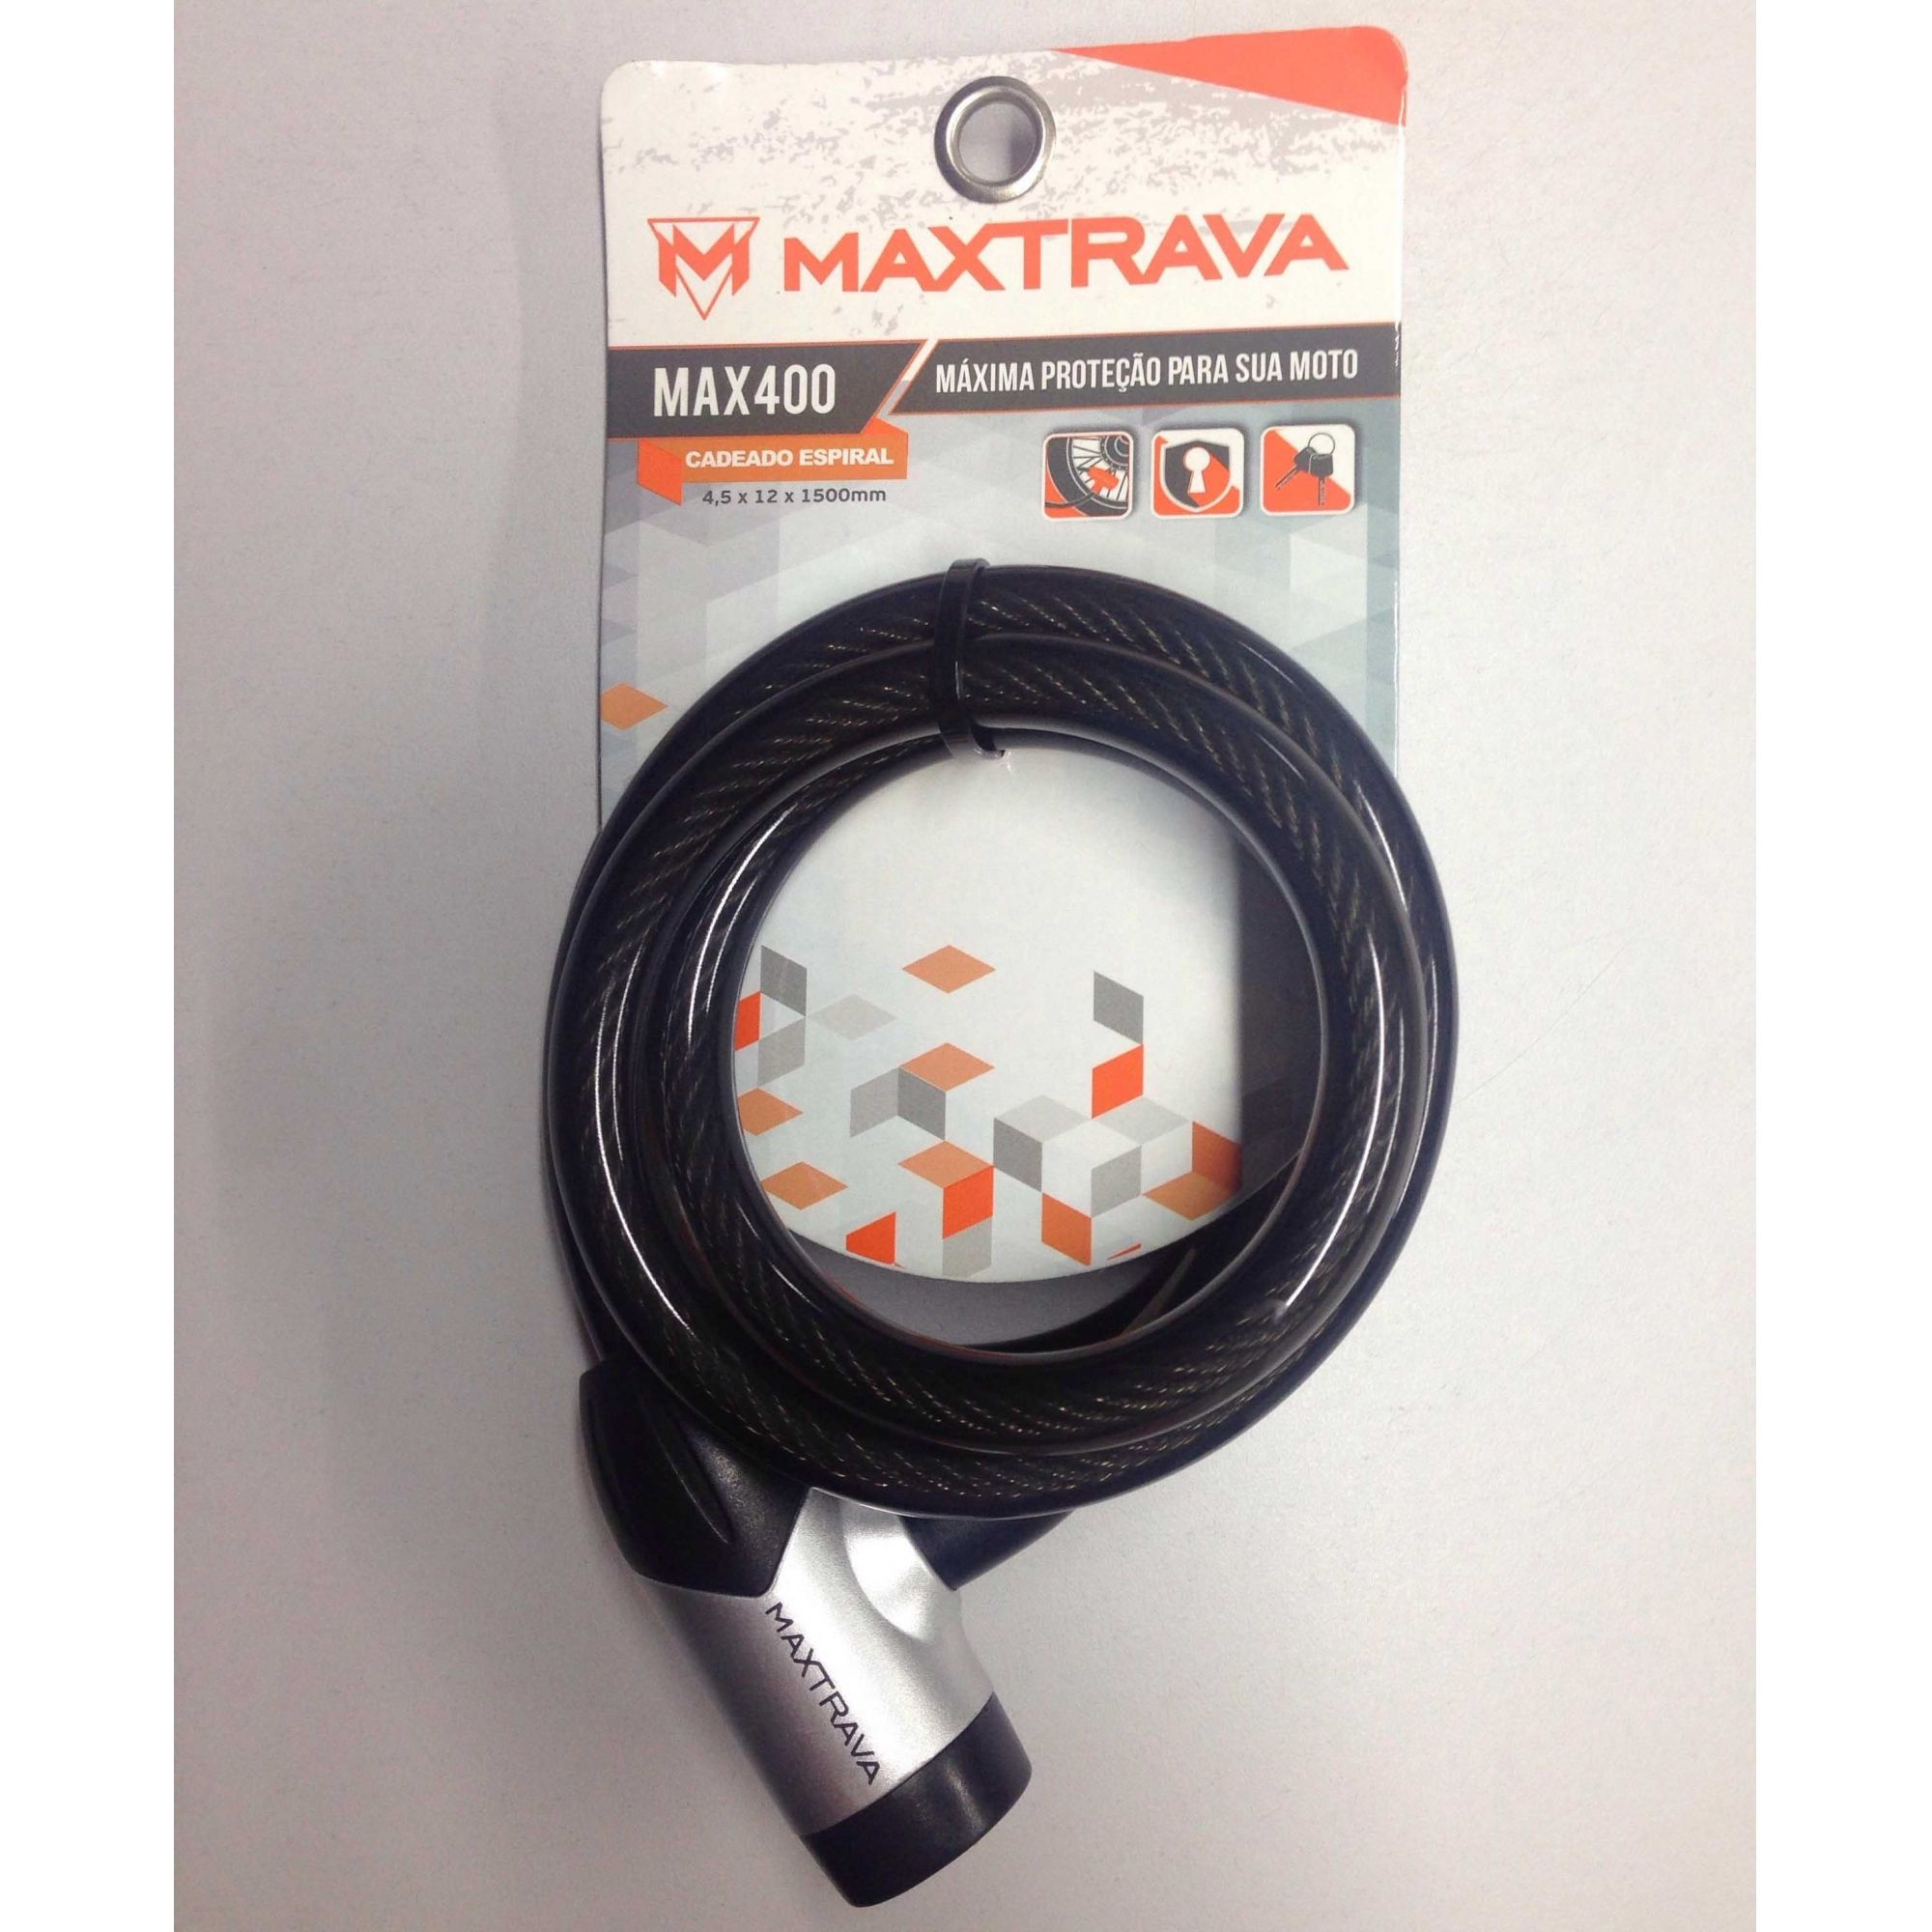 Trava Anti Furto Maxtrava Cadeado Espiral Max 400 12x1500mm